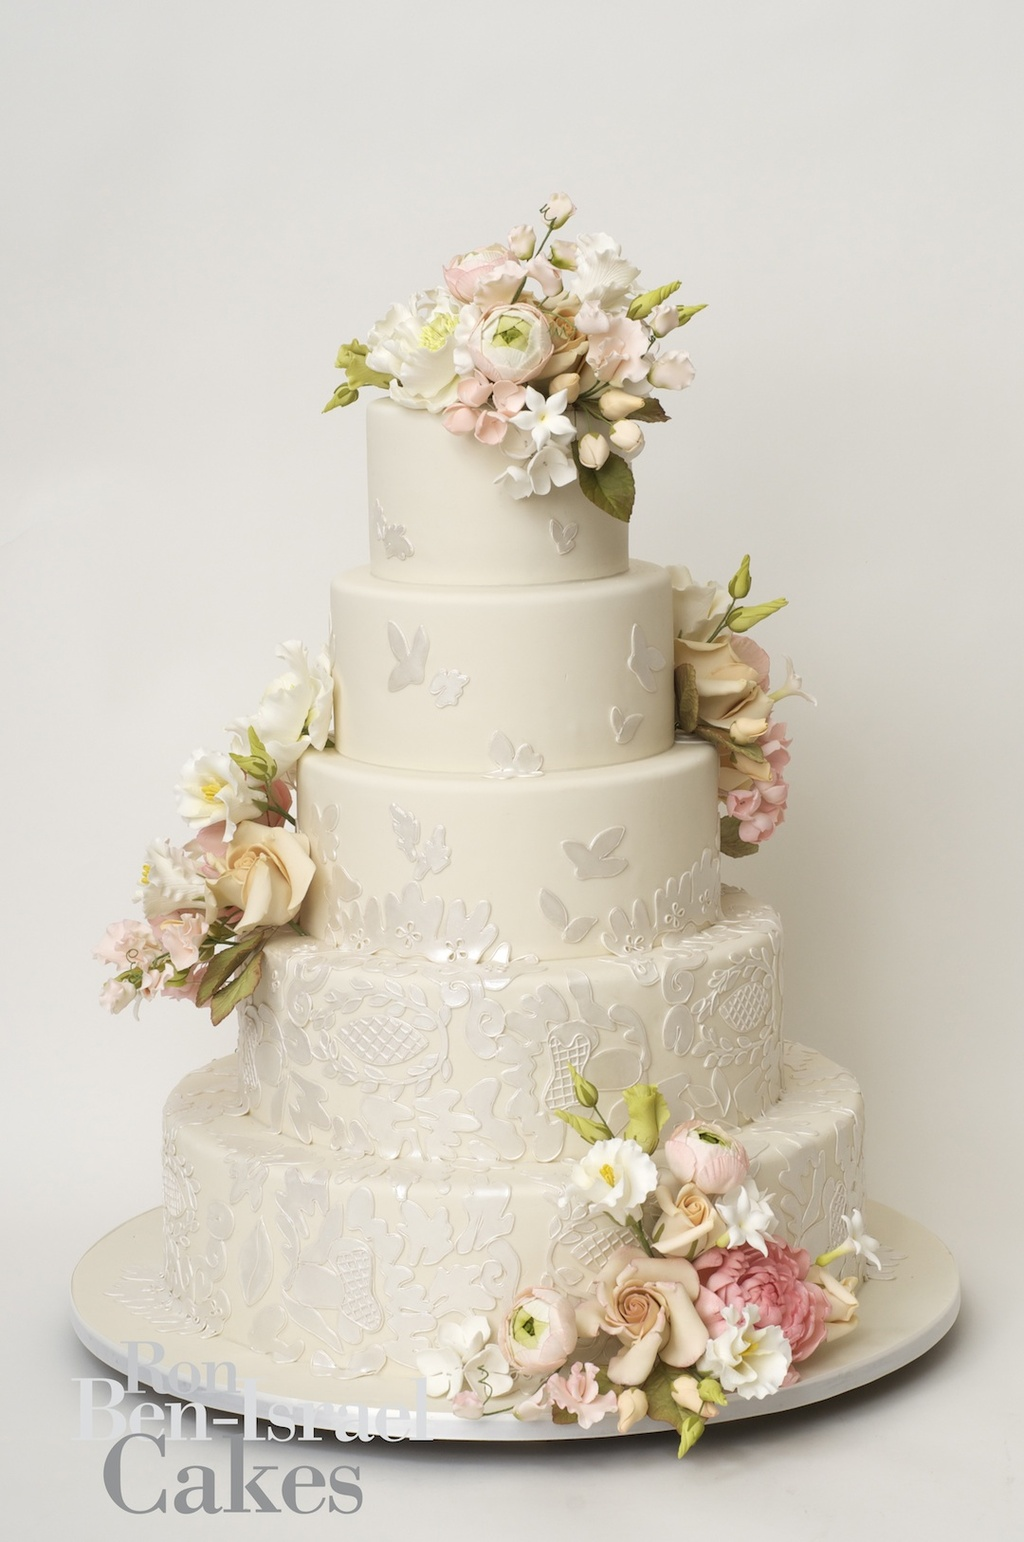 Wedding-cake-inspiration-ron-ben-isreal-wedding-cakes-ivory-with-pastel-flowers.original.full